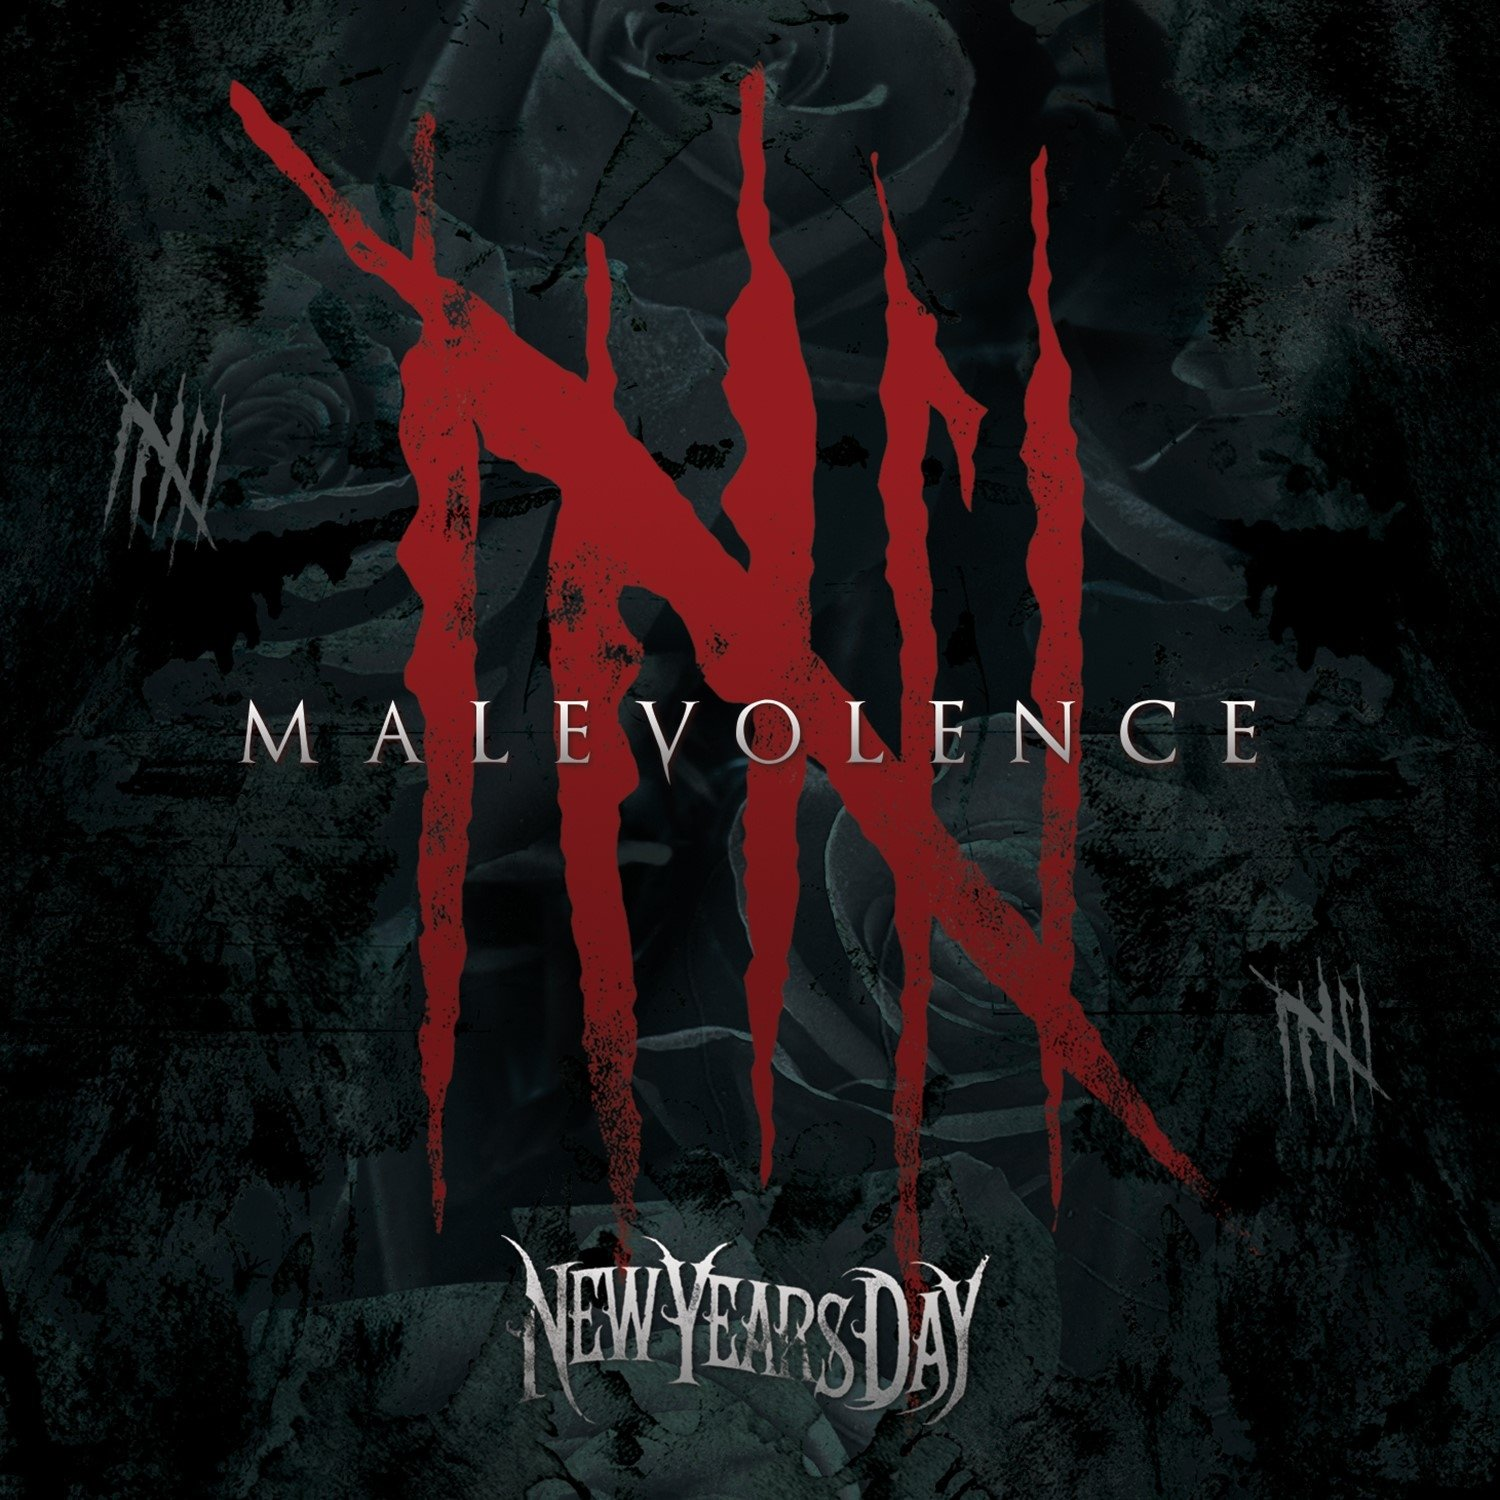 NEW YEARS DAY - MALEVOLENCE